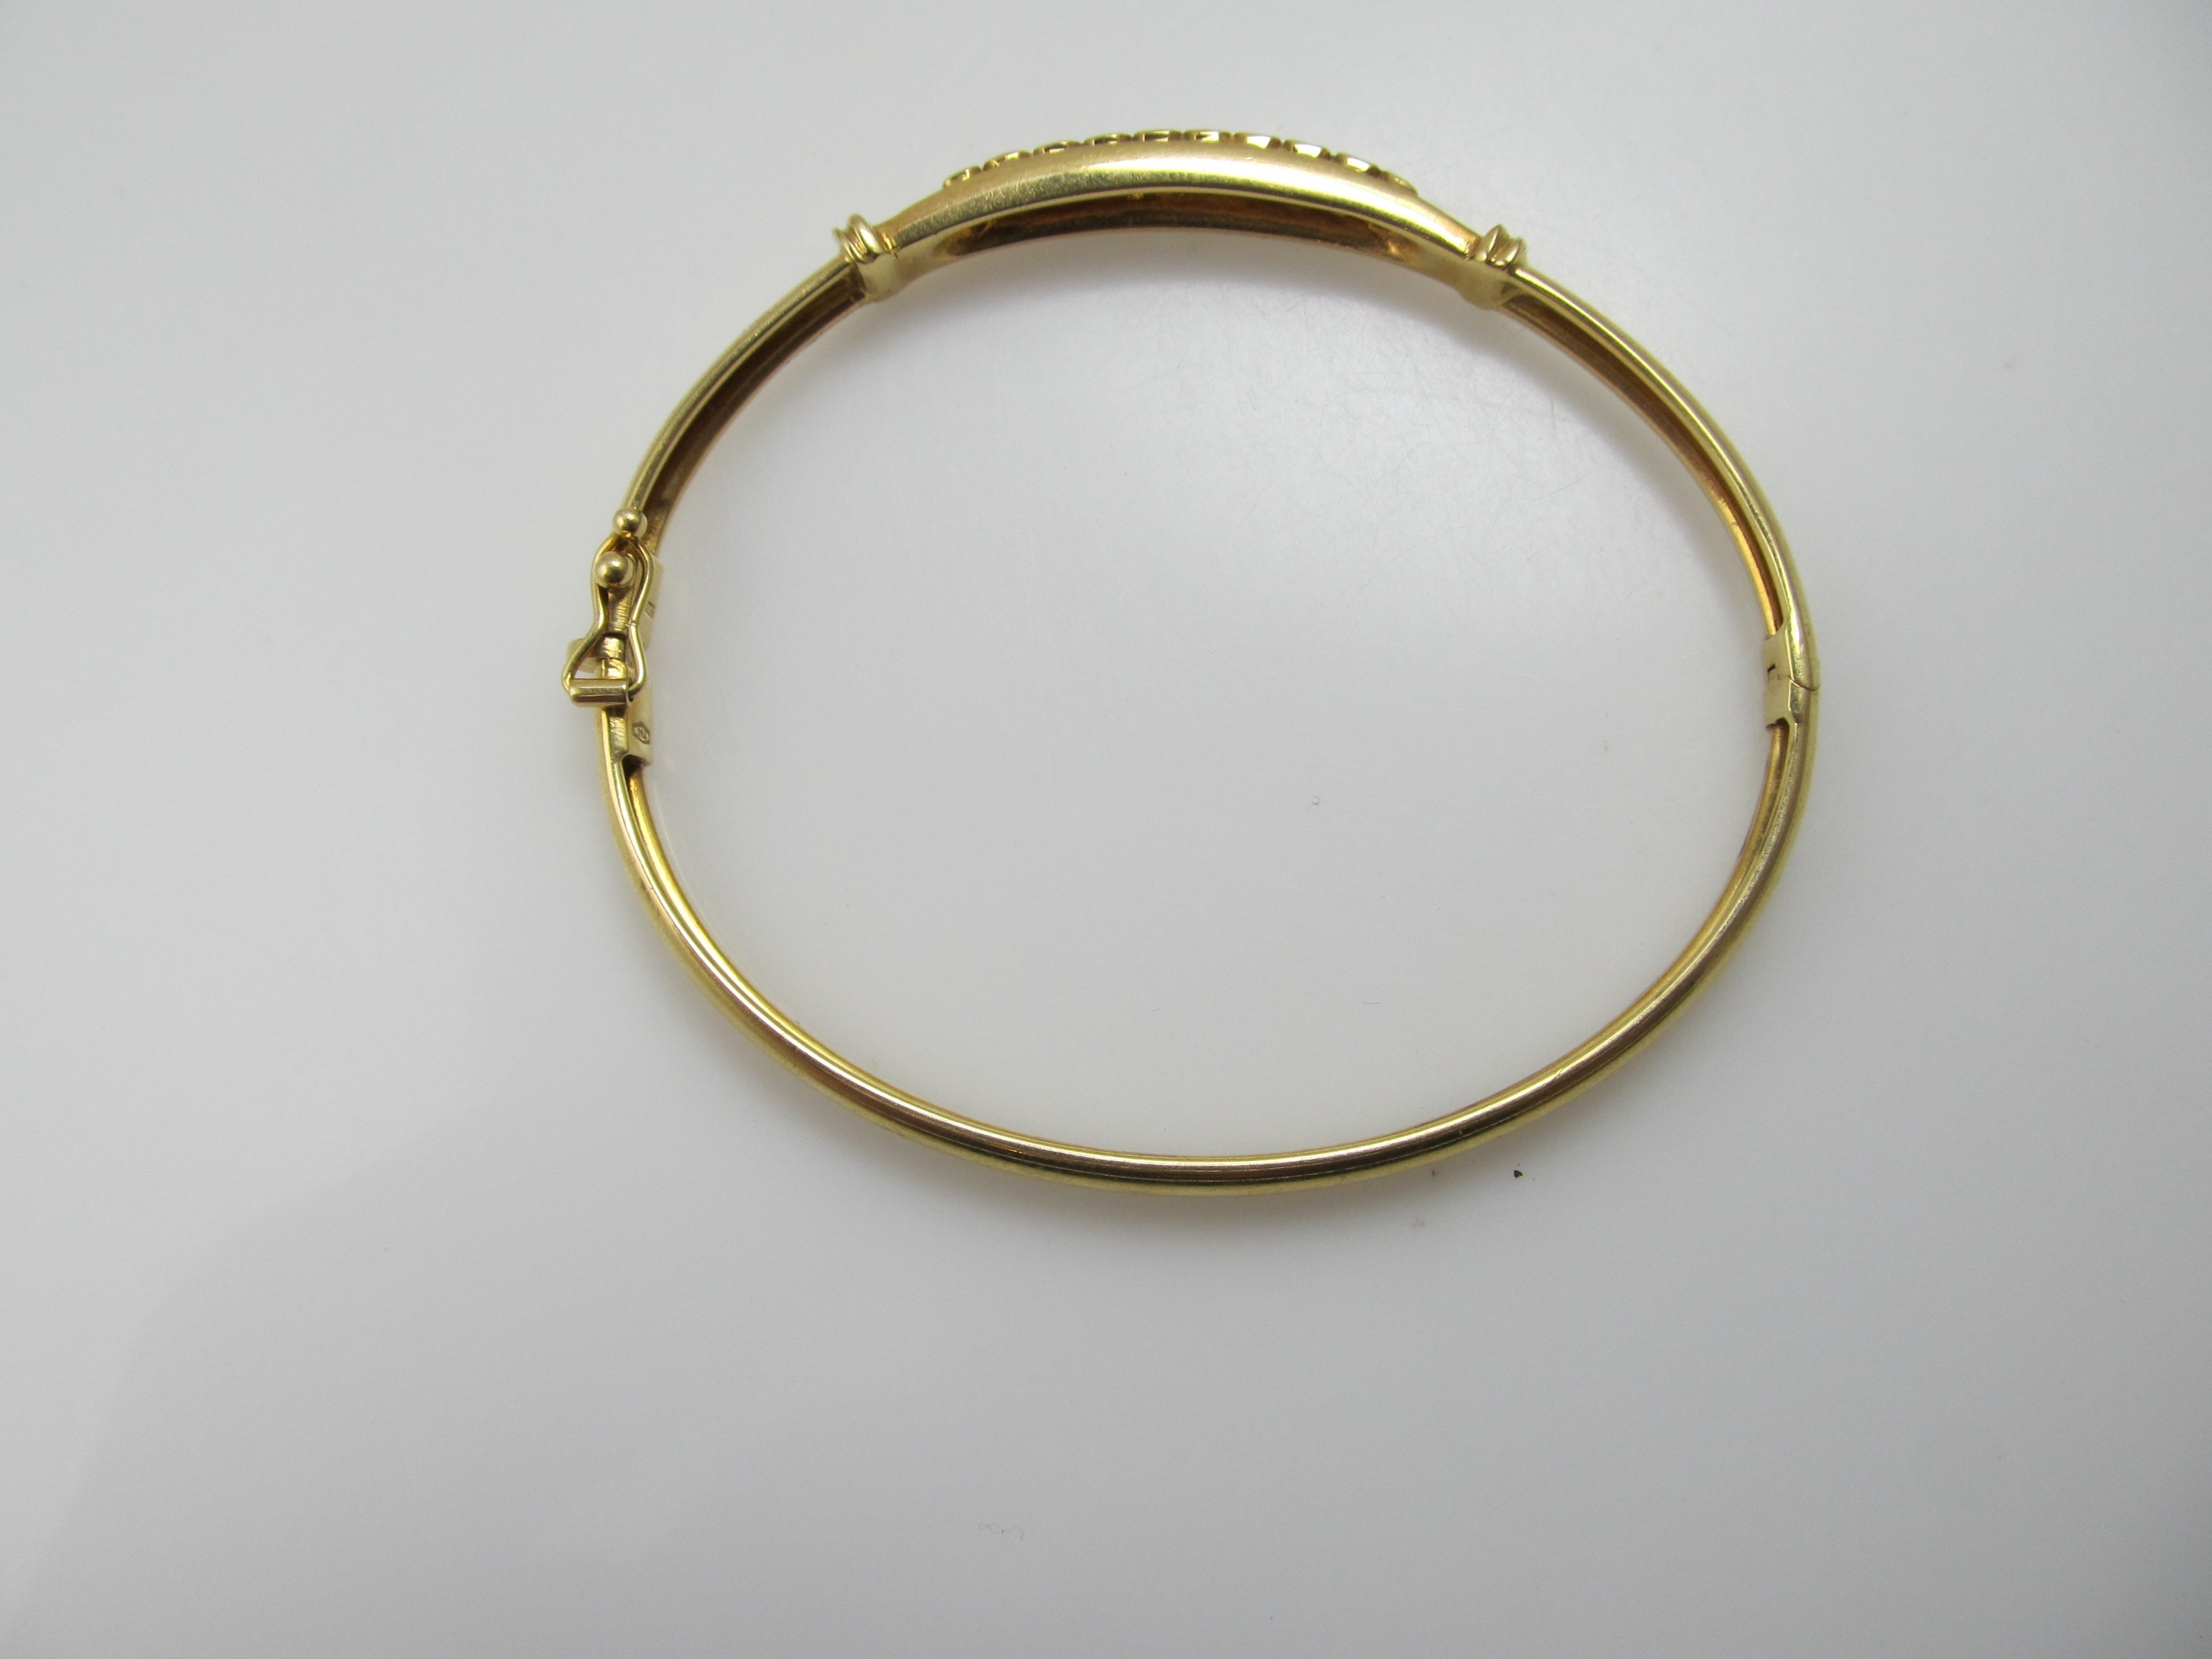 bangles roberto classic diamond coin inches yellow bracelet eternity bangle gold